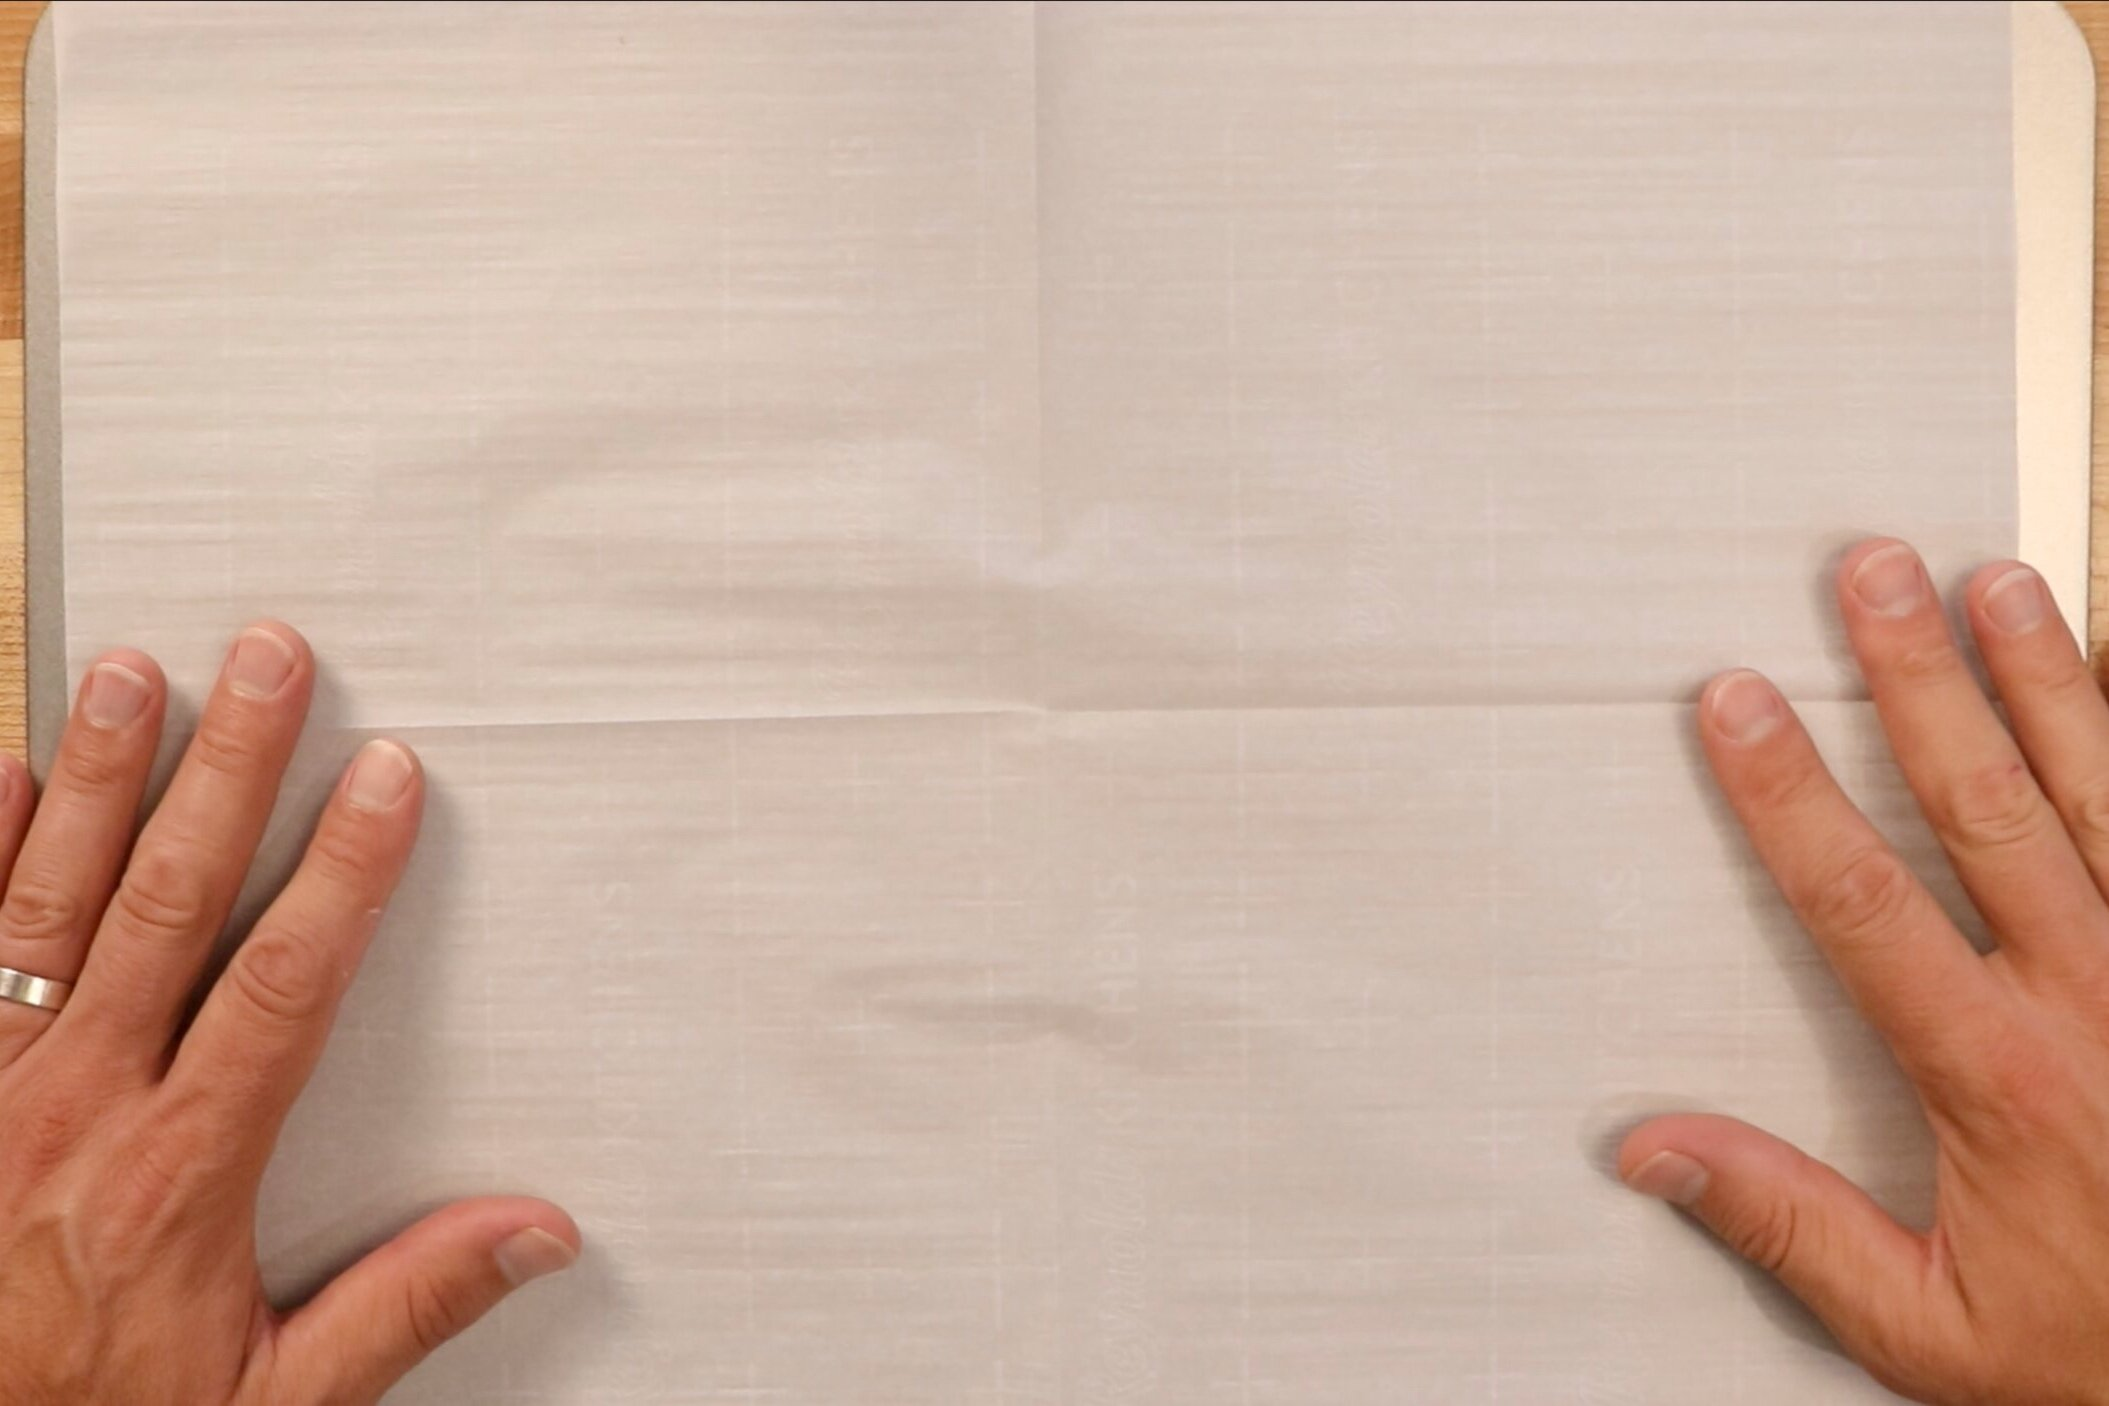 1. Preheat oven to 400 degrees and line a baking sheet with parchment paper. -